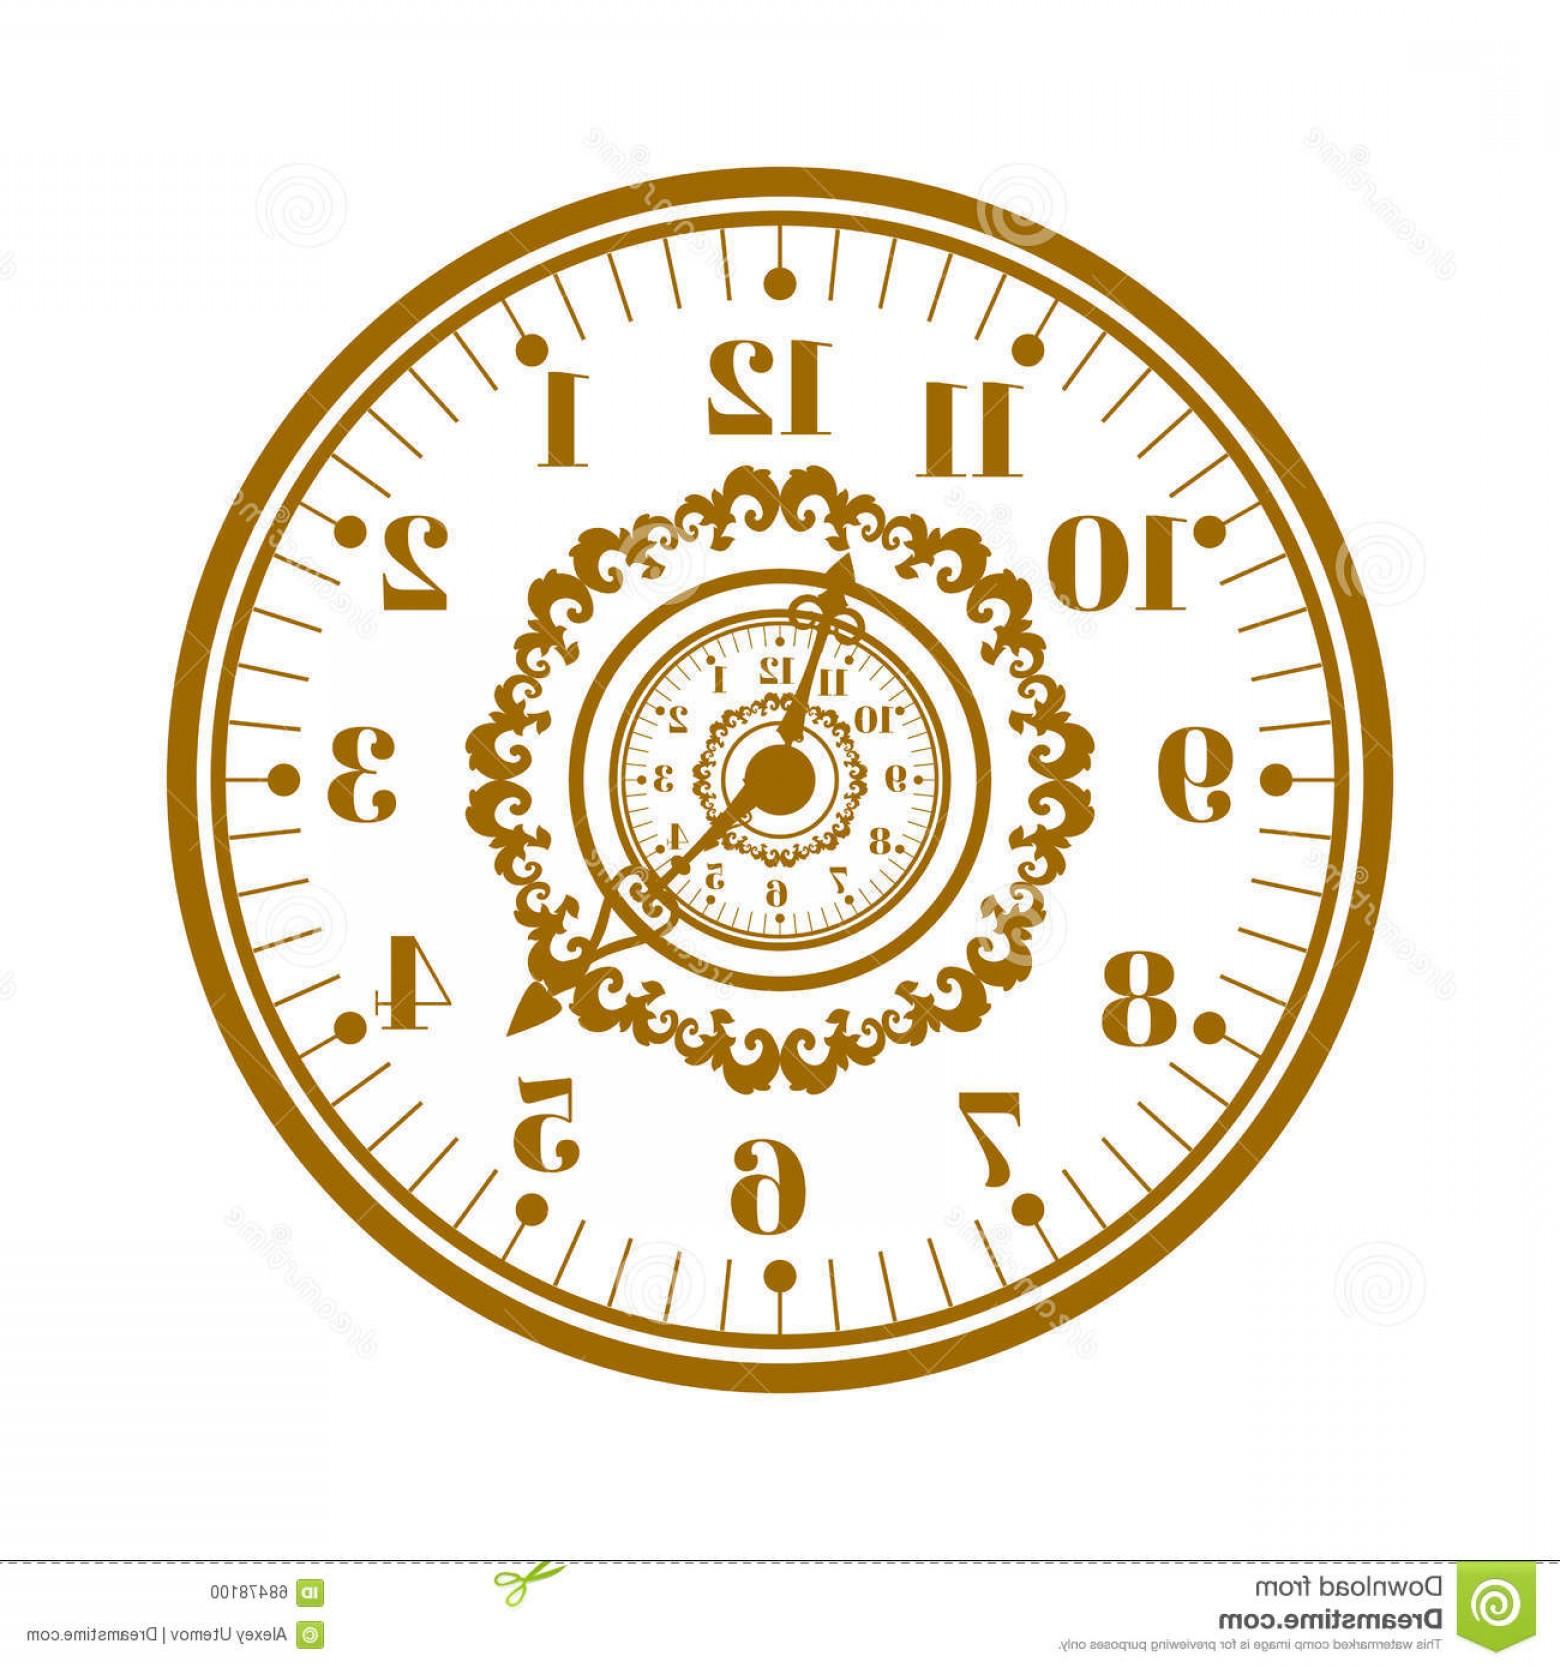 Watch Face Vector: Stock Illustration Watch Face Antique Clock Vector Illustration Flat Circle Measurement Time Dial Symbol Isolated White Image